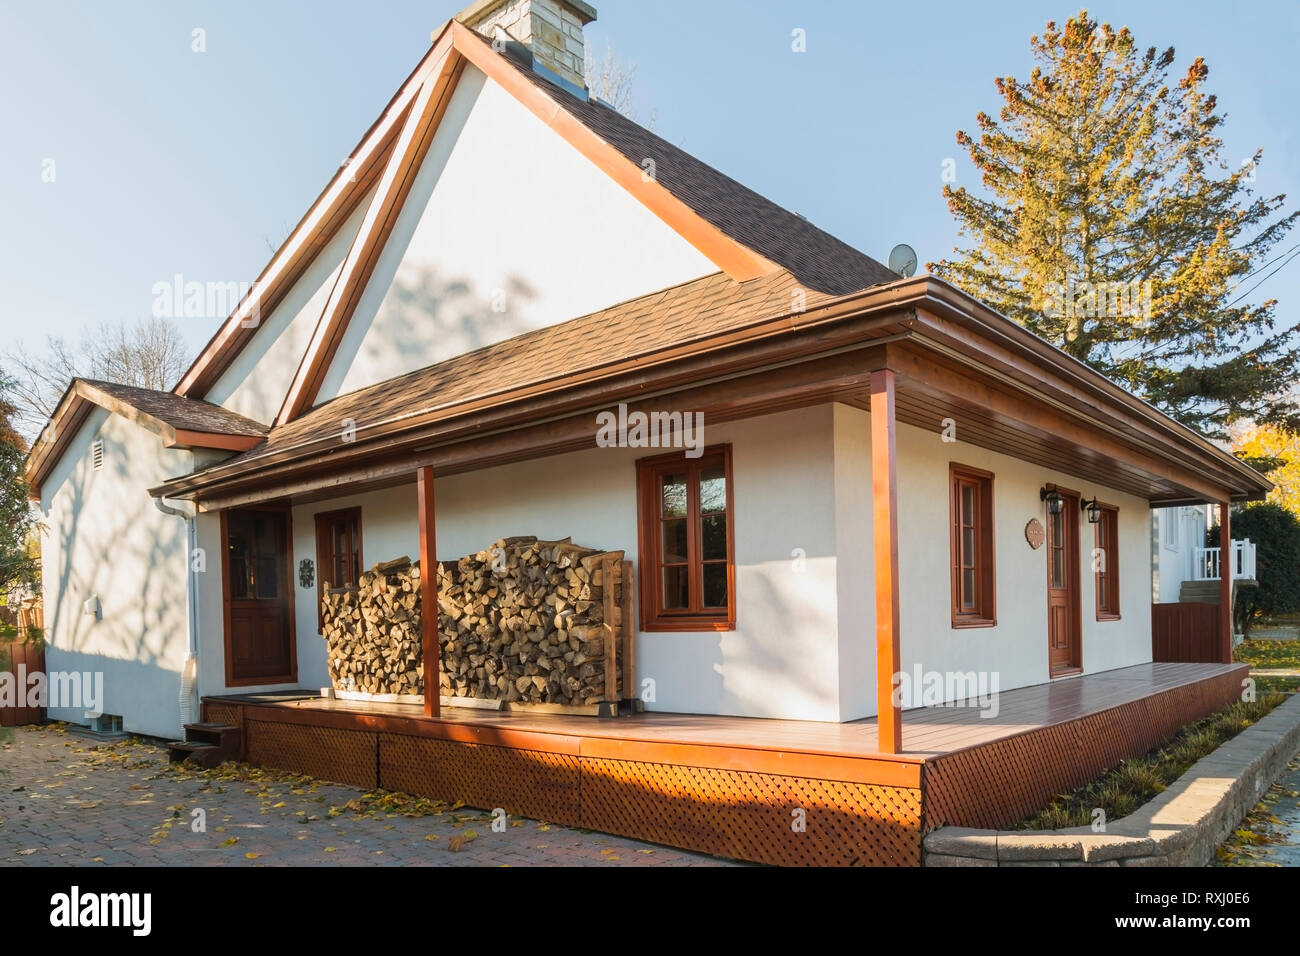 Old 1877 French regime style house facade with white stucco finish, reddish brown stained lattice-work and period reproduction wooden windows and cord - Stock Image